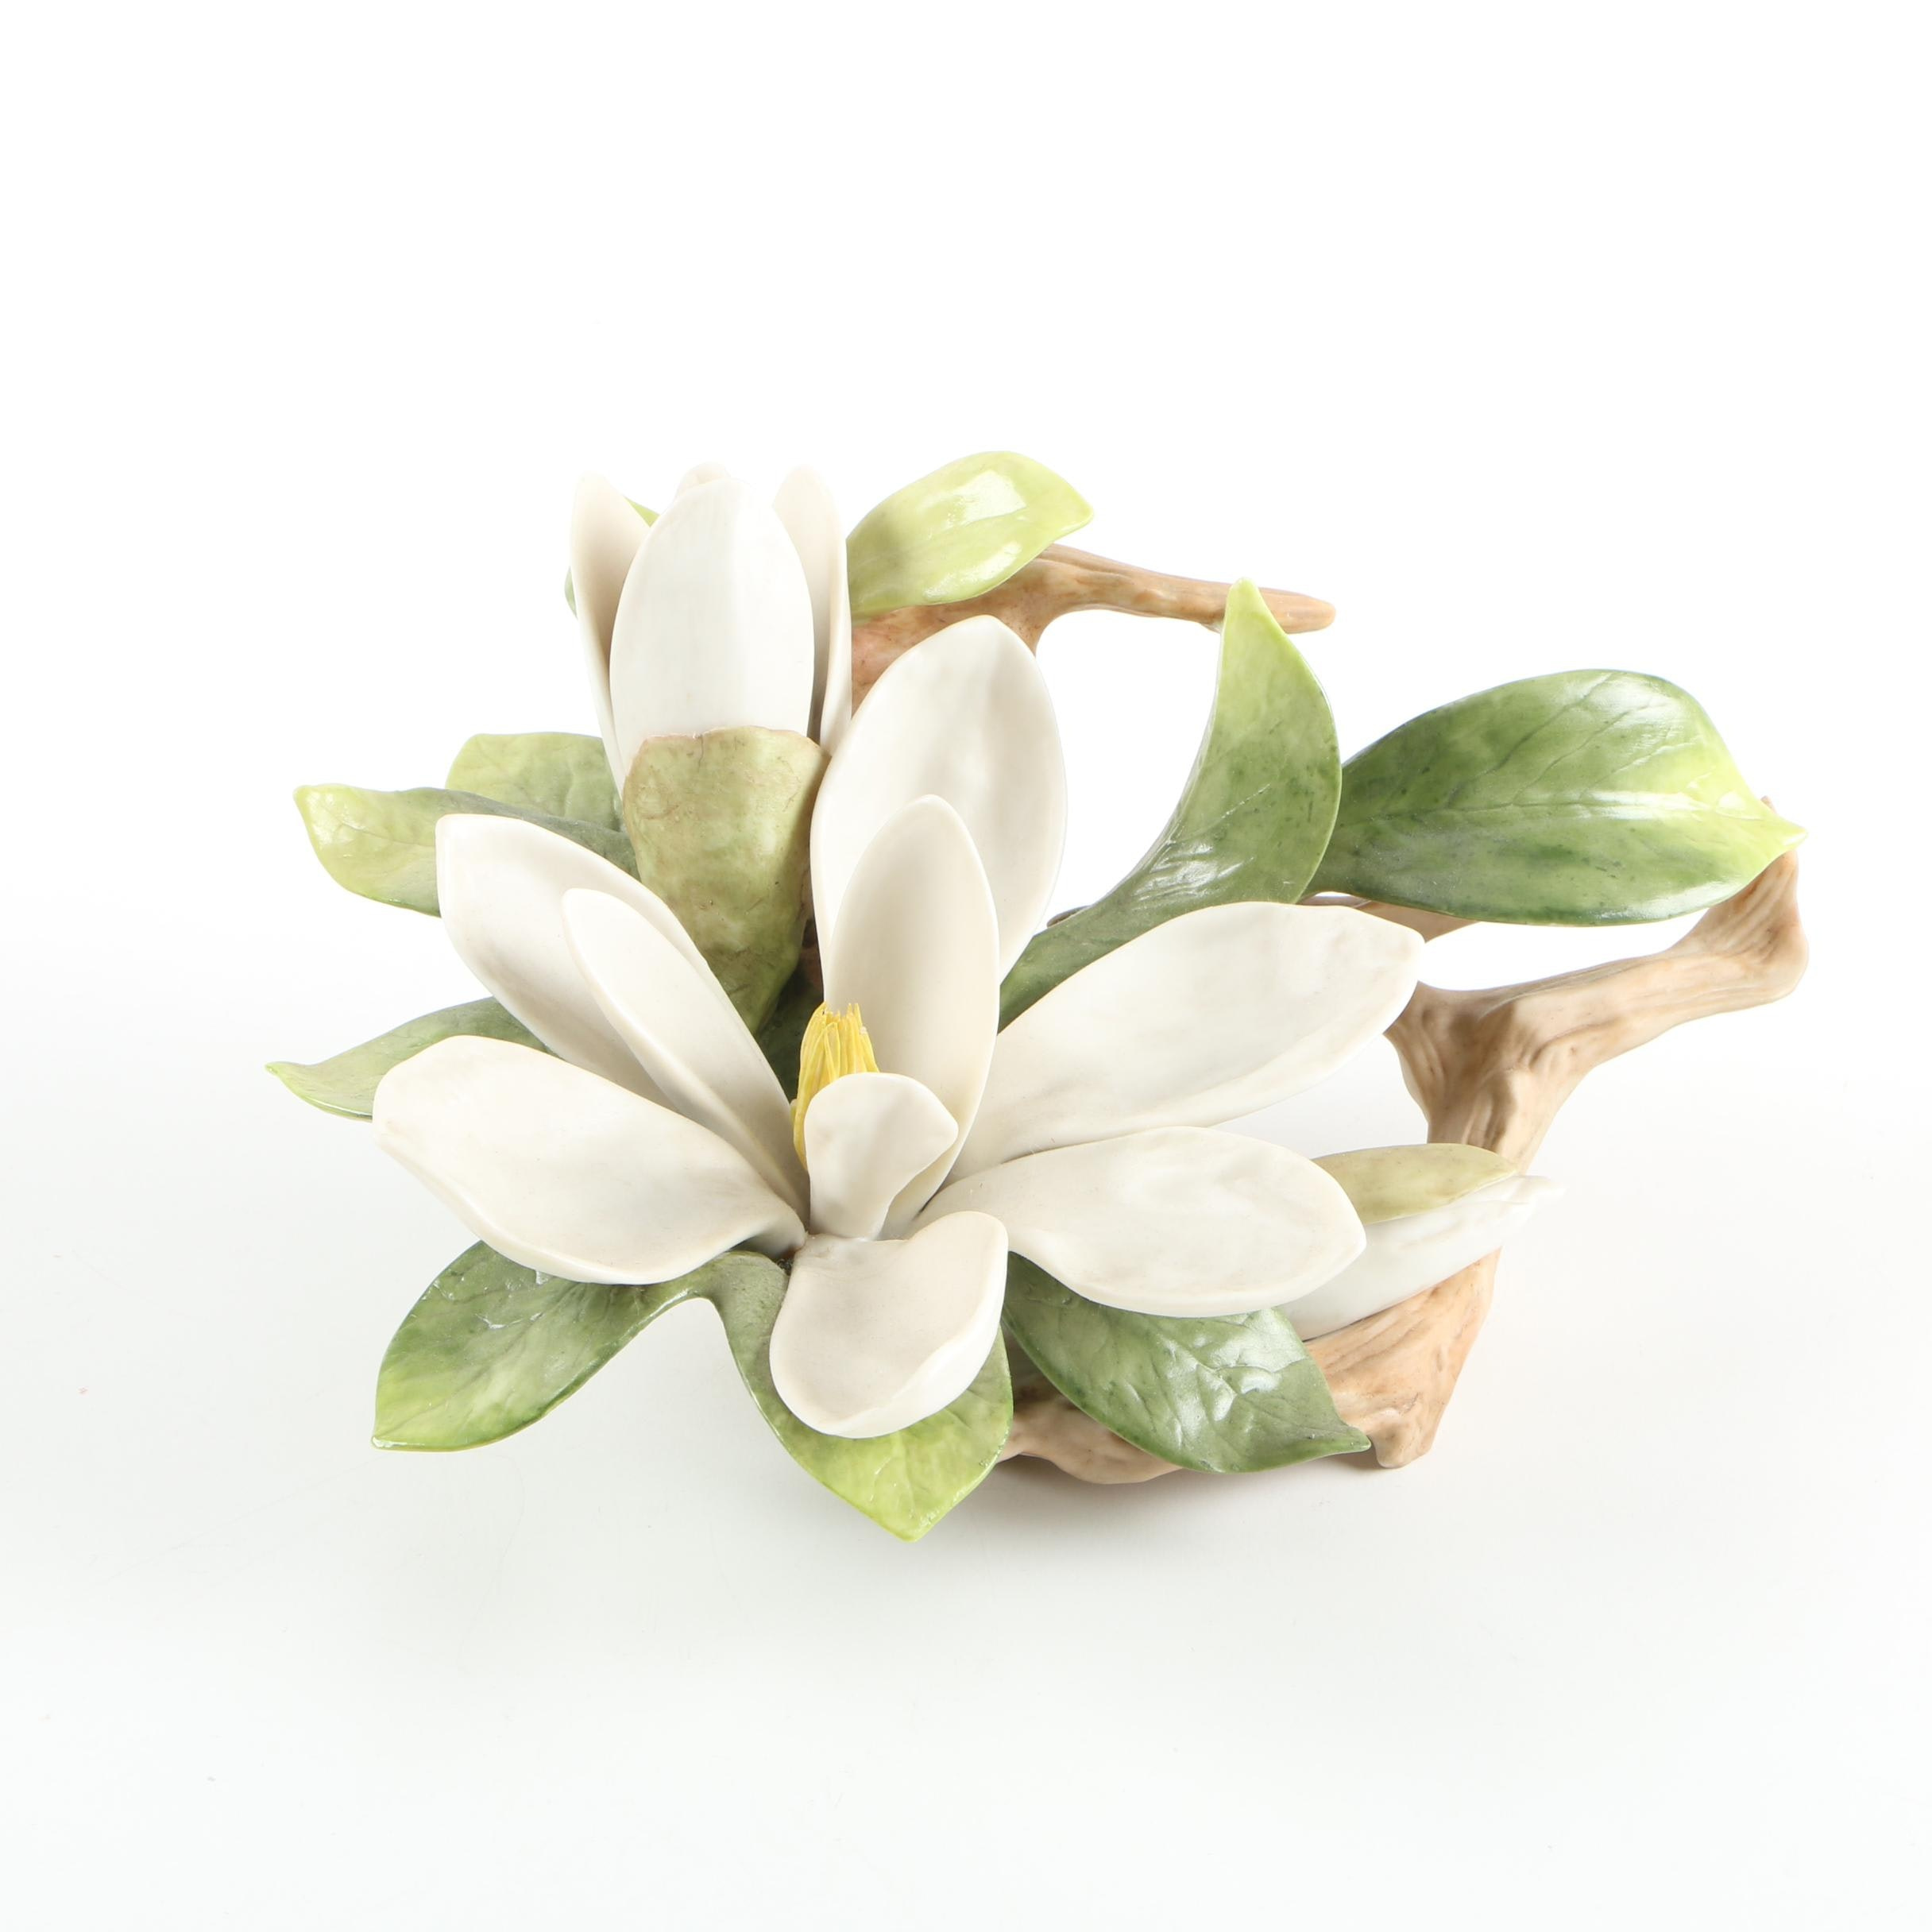 White Lilly Porcelain Figurine